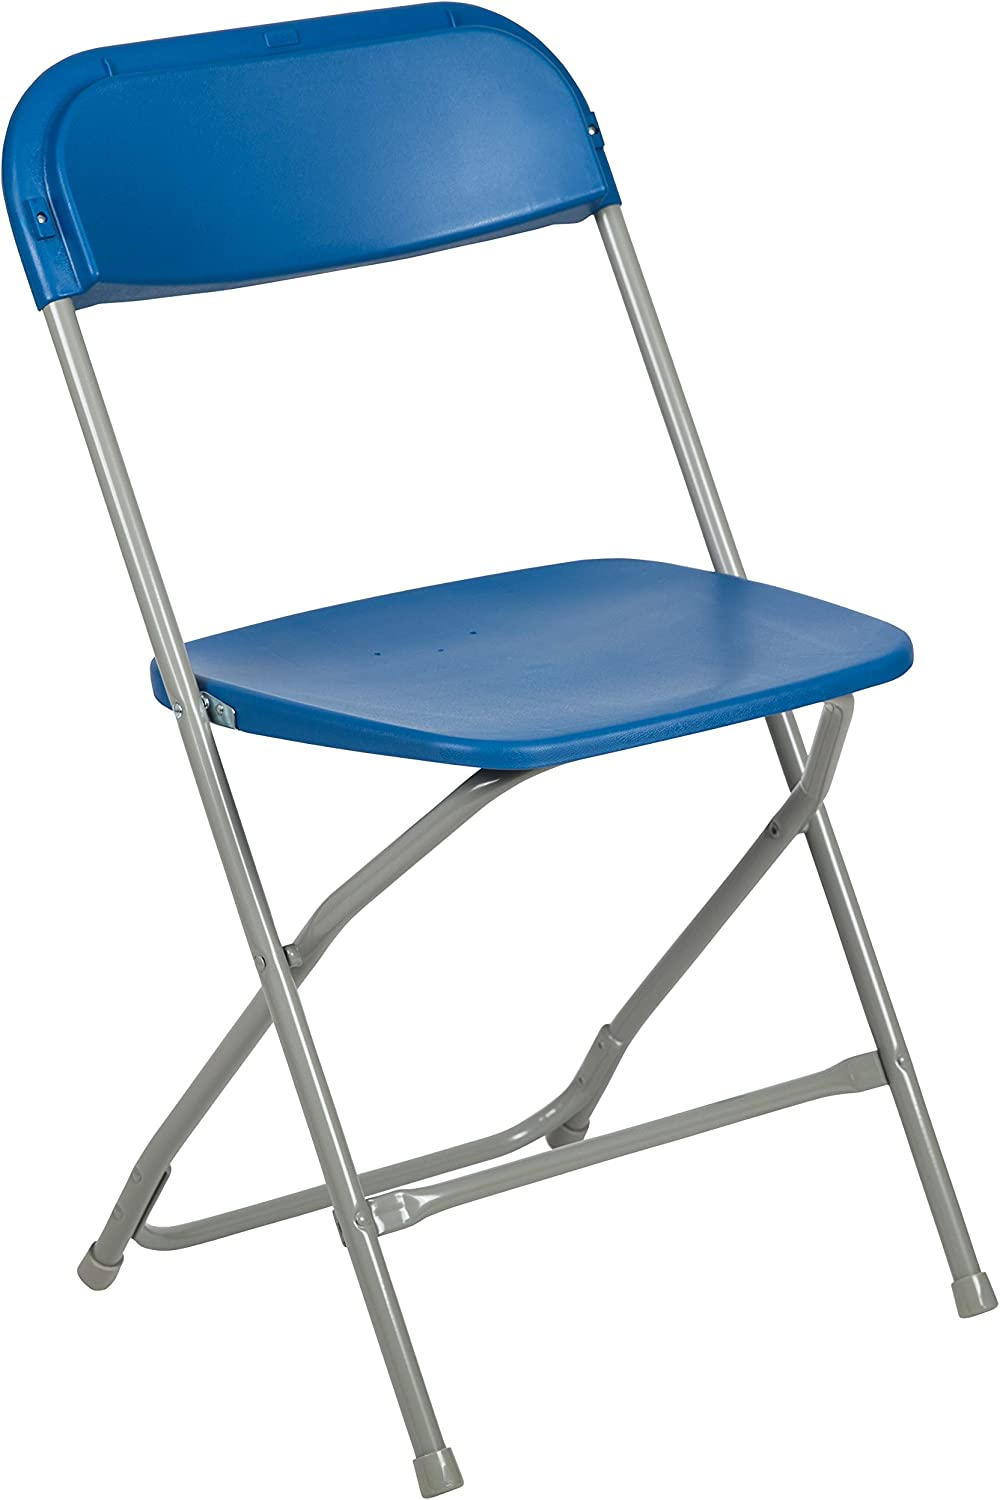 Flash Furniture HERCULES Series 650 lb. Capacity Premium Blue Plastic Folding Chair